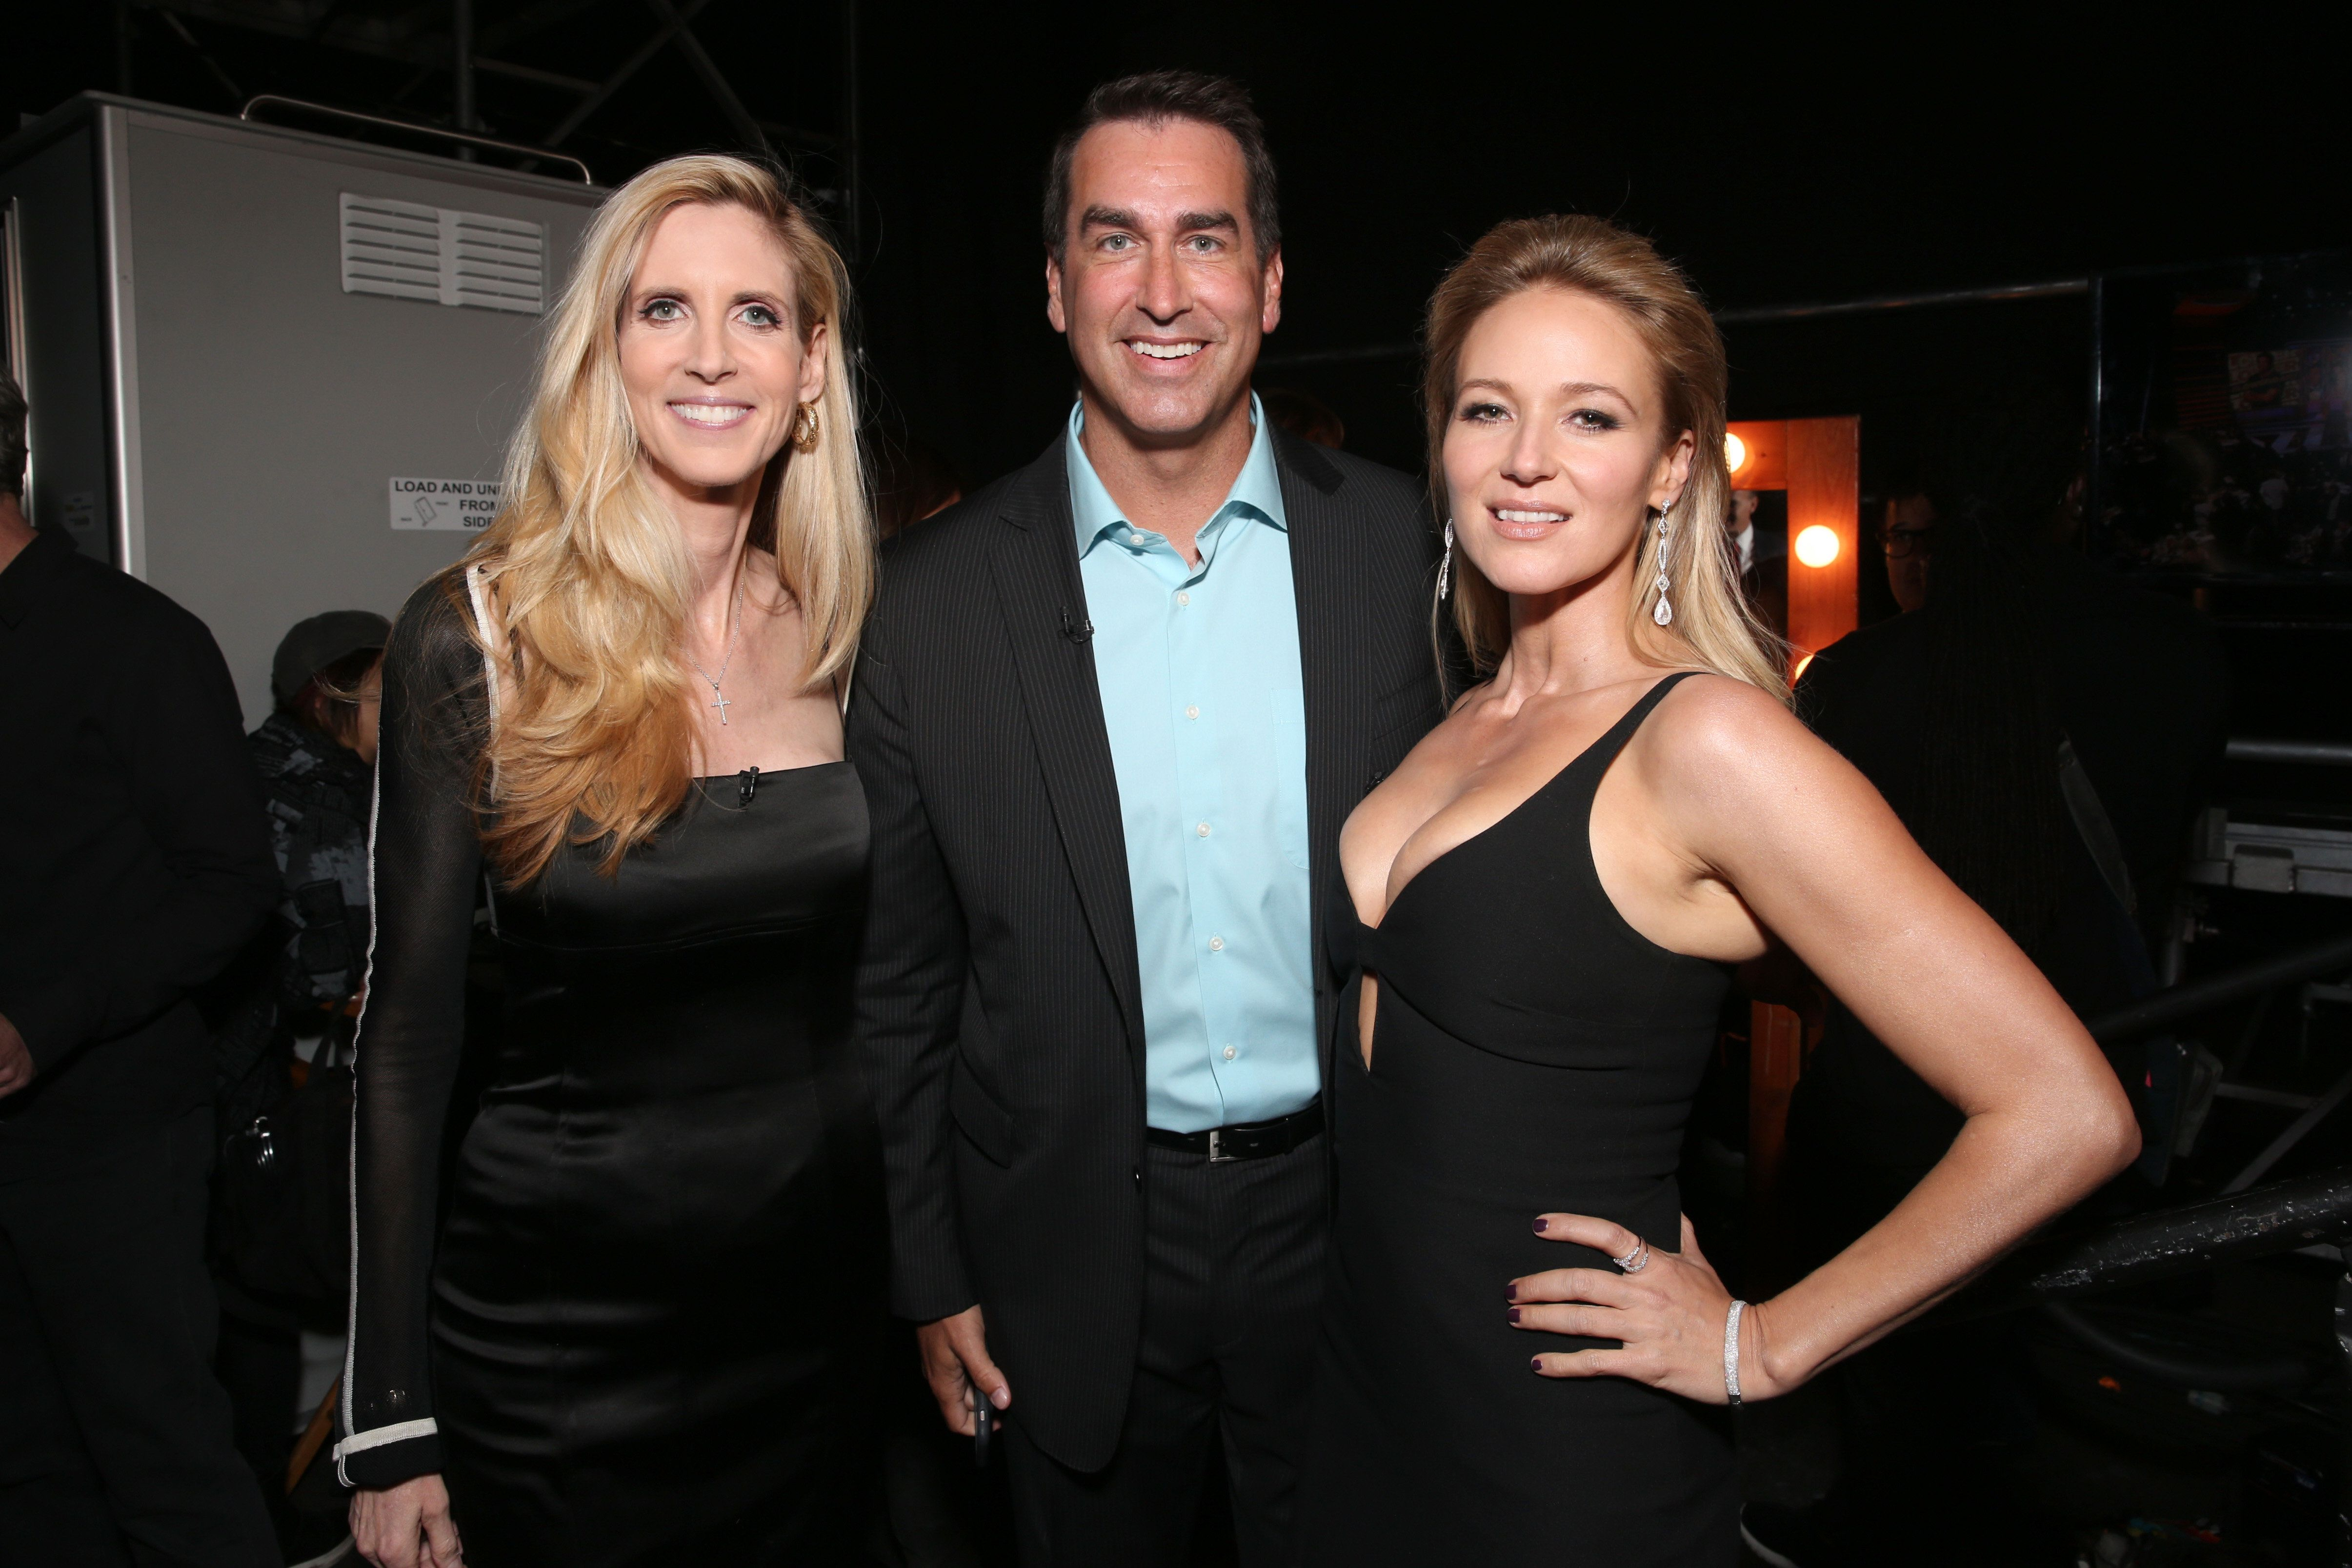 LOS ANGELES, CA - AUGUST 27:  (L-R) Commentator Ann Coulter, actor Rob Riggle and singer Jewel attend The Comedy Central Roast of Rob Lowe at Sony Studios on August 27, 2016 in Los Angeles, California. The Comedy Central Roast of Rob Lowe will premiere on September 5, 2016 at 10:00 p.m. ET/PT.  (Photo by Todd Williamson/Getty Images)